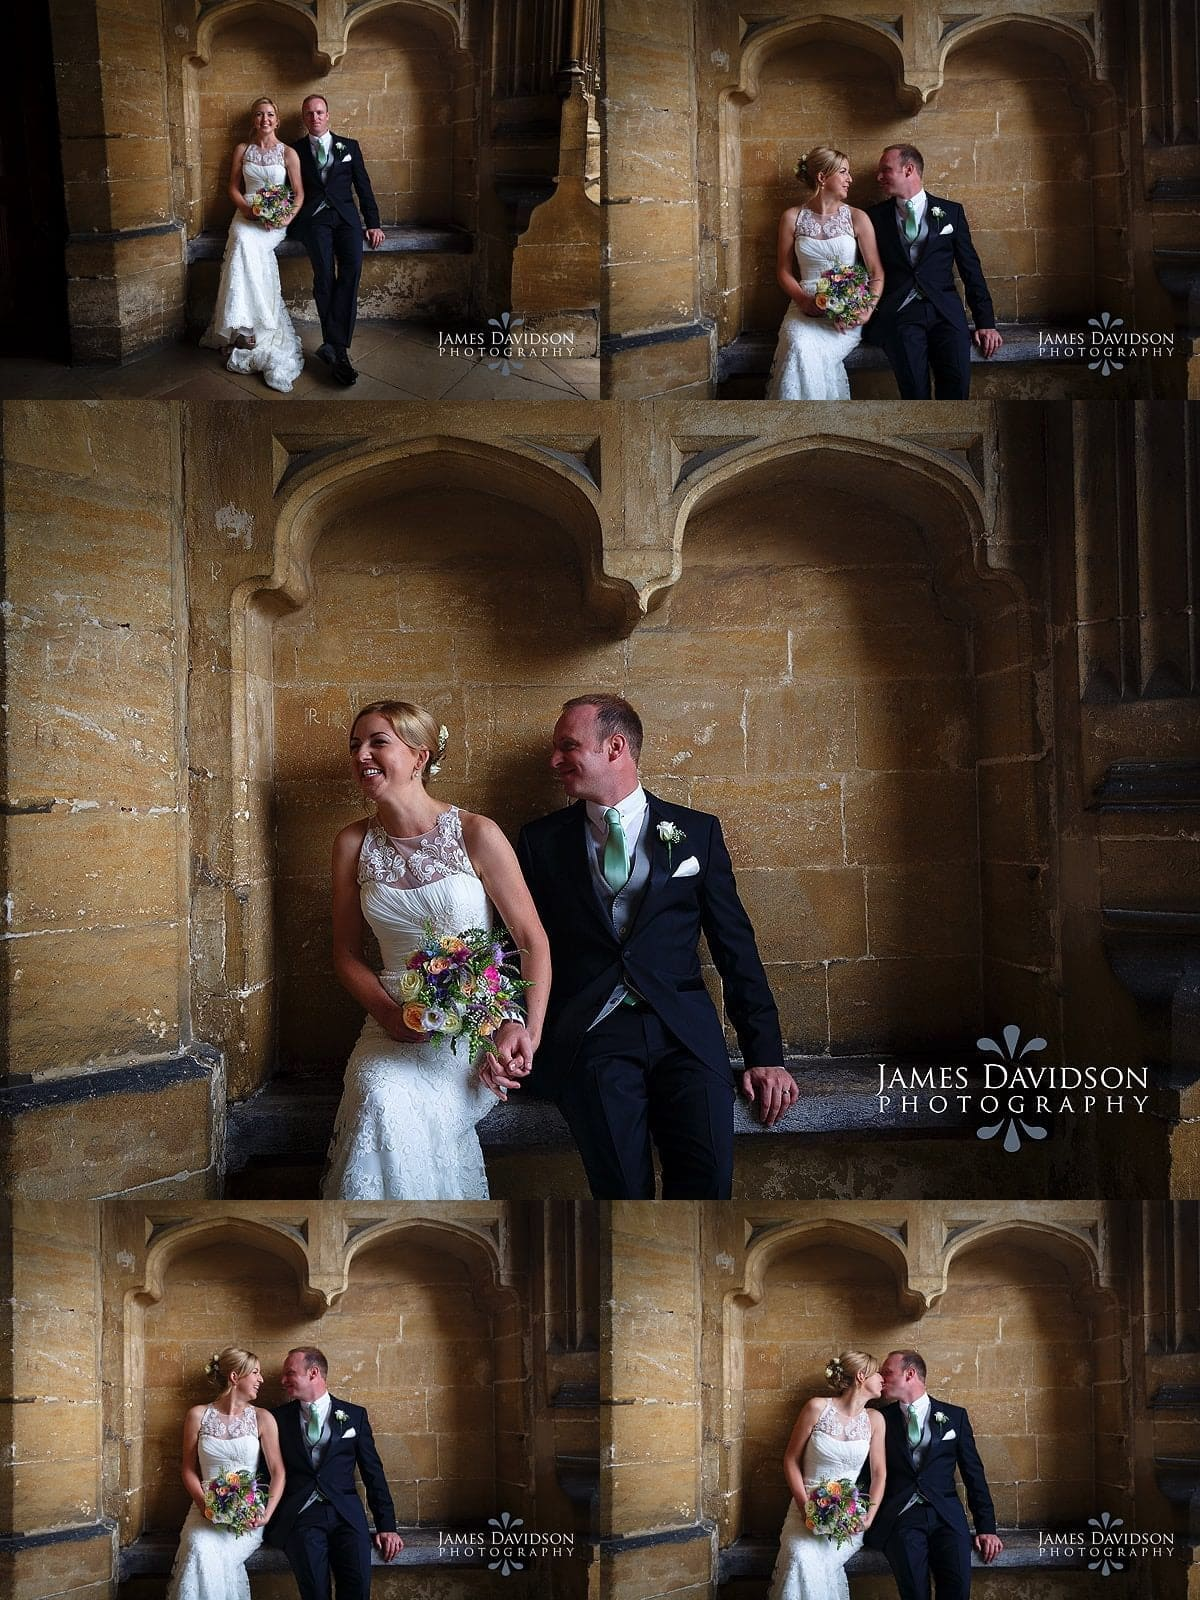 Hengrave-wedding-photography-093.jpg